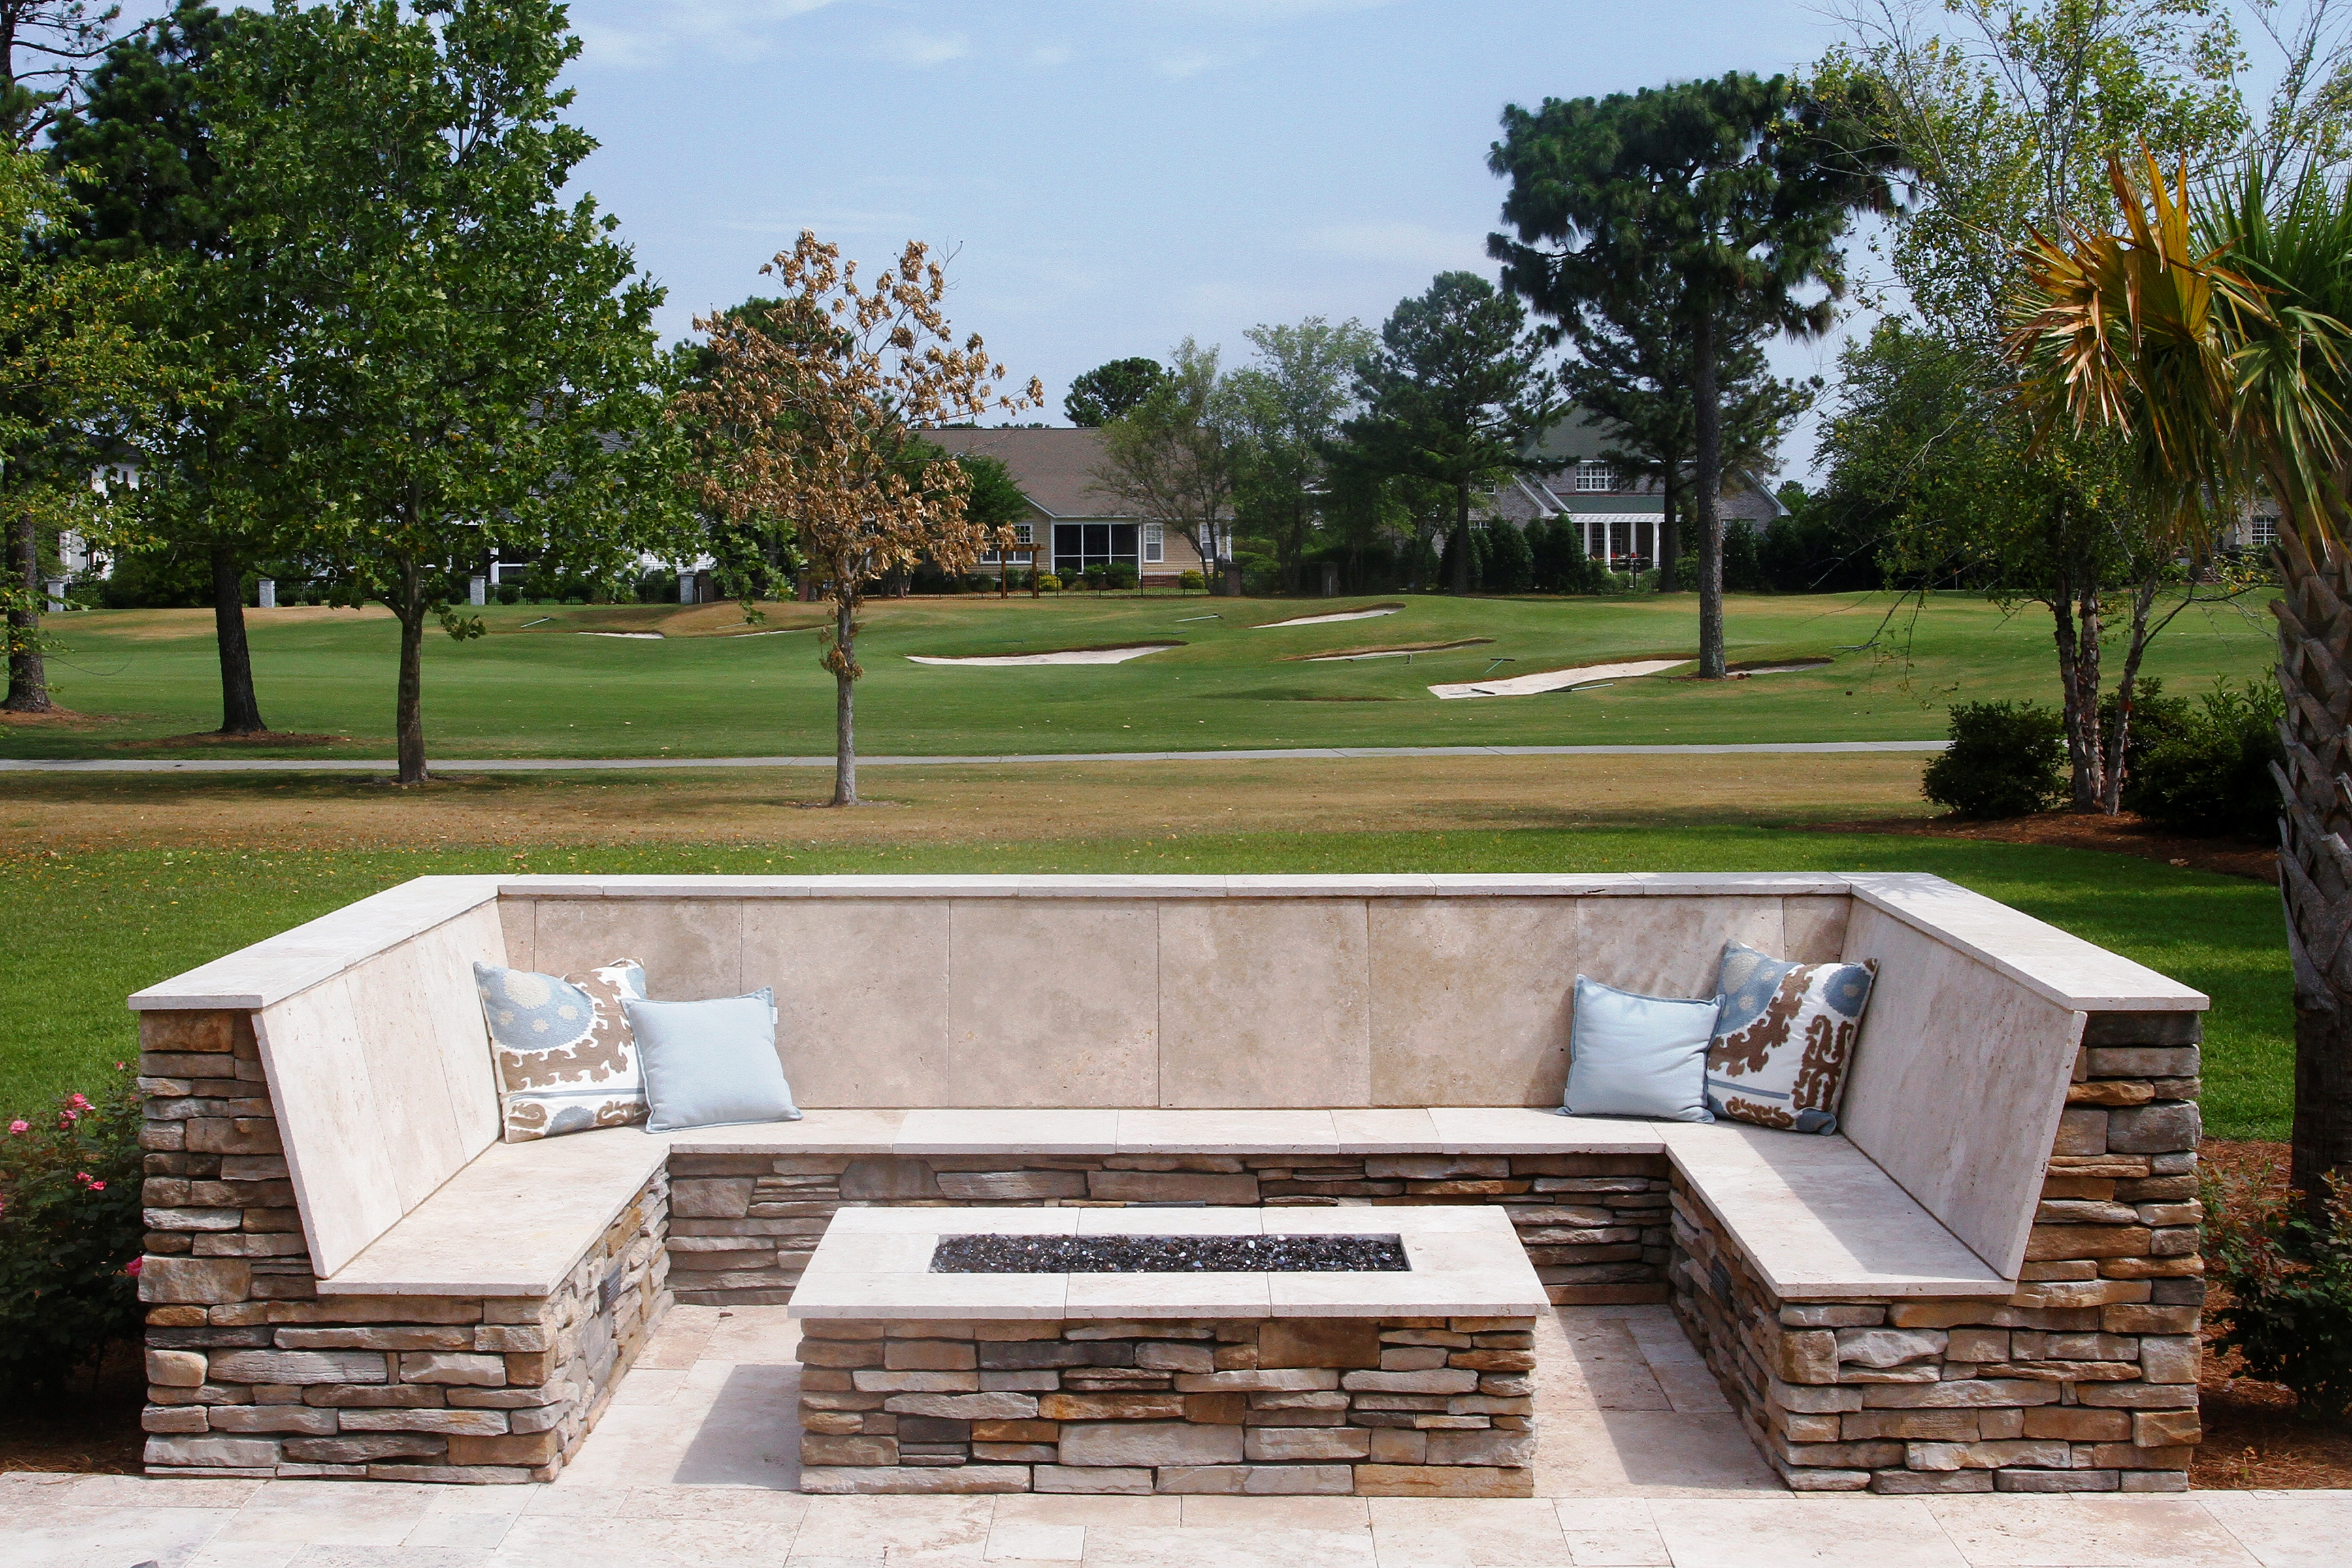 stone outdoor living patio with oblong fire-pit and seating bench overlooking golf course